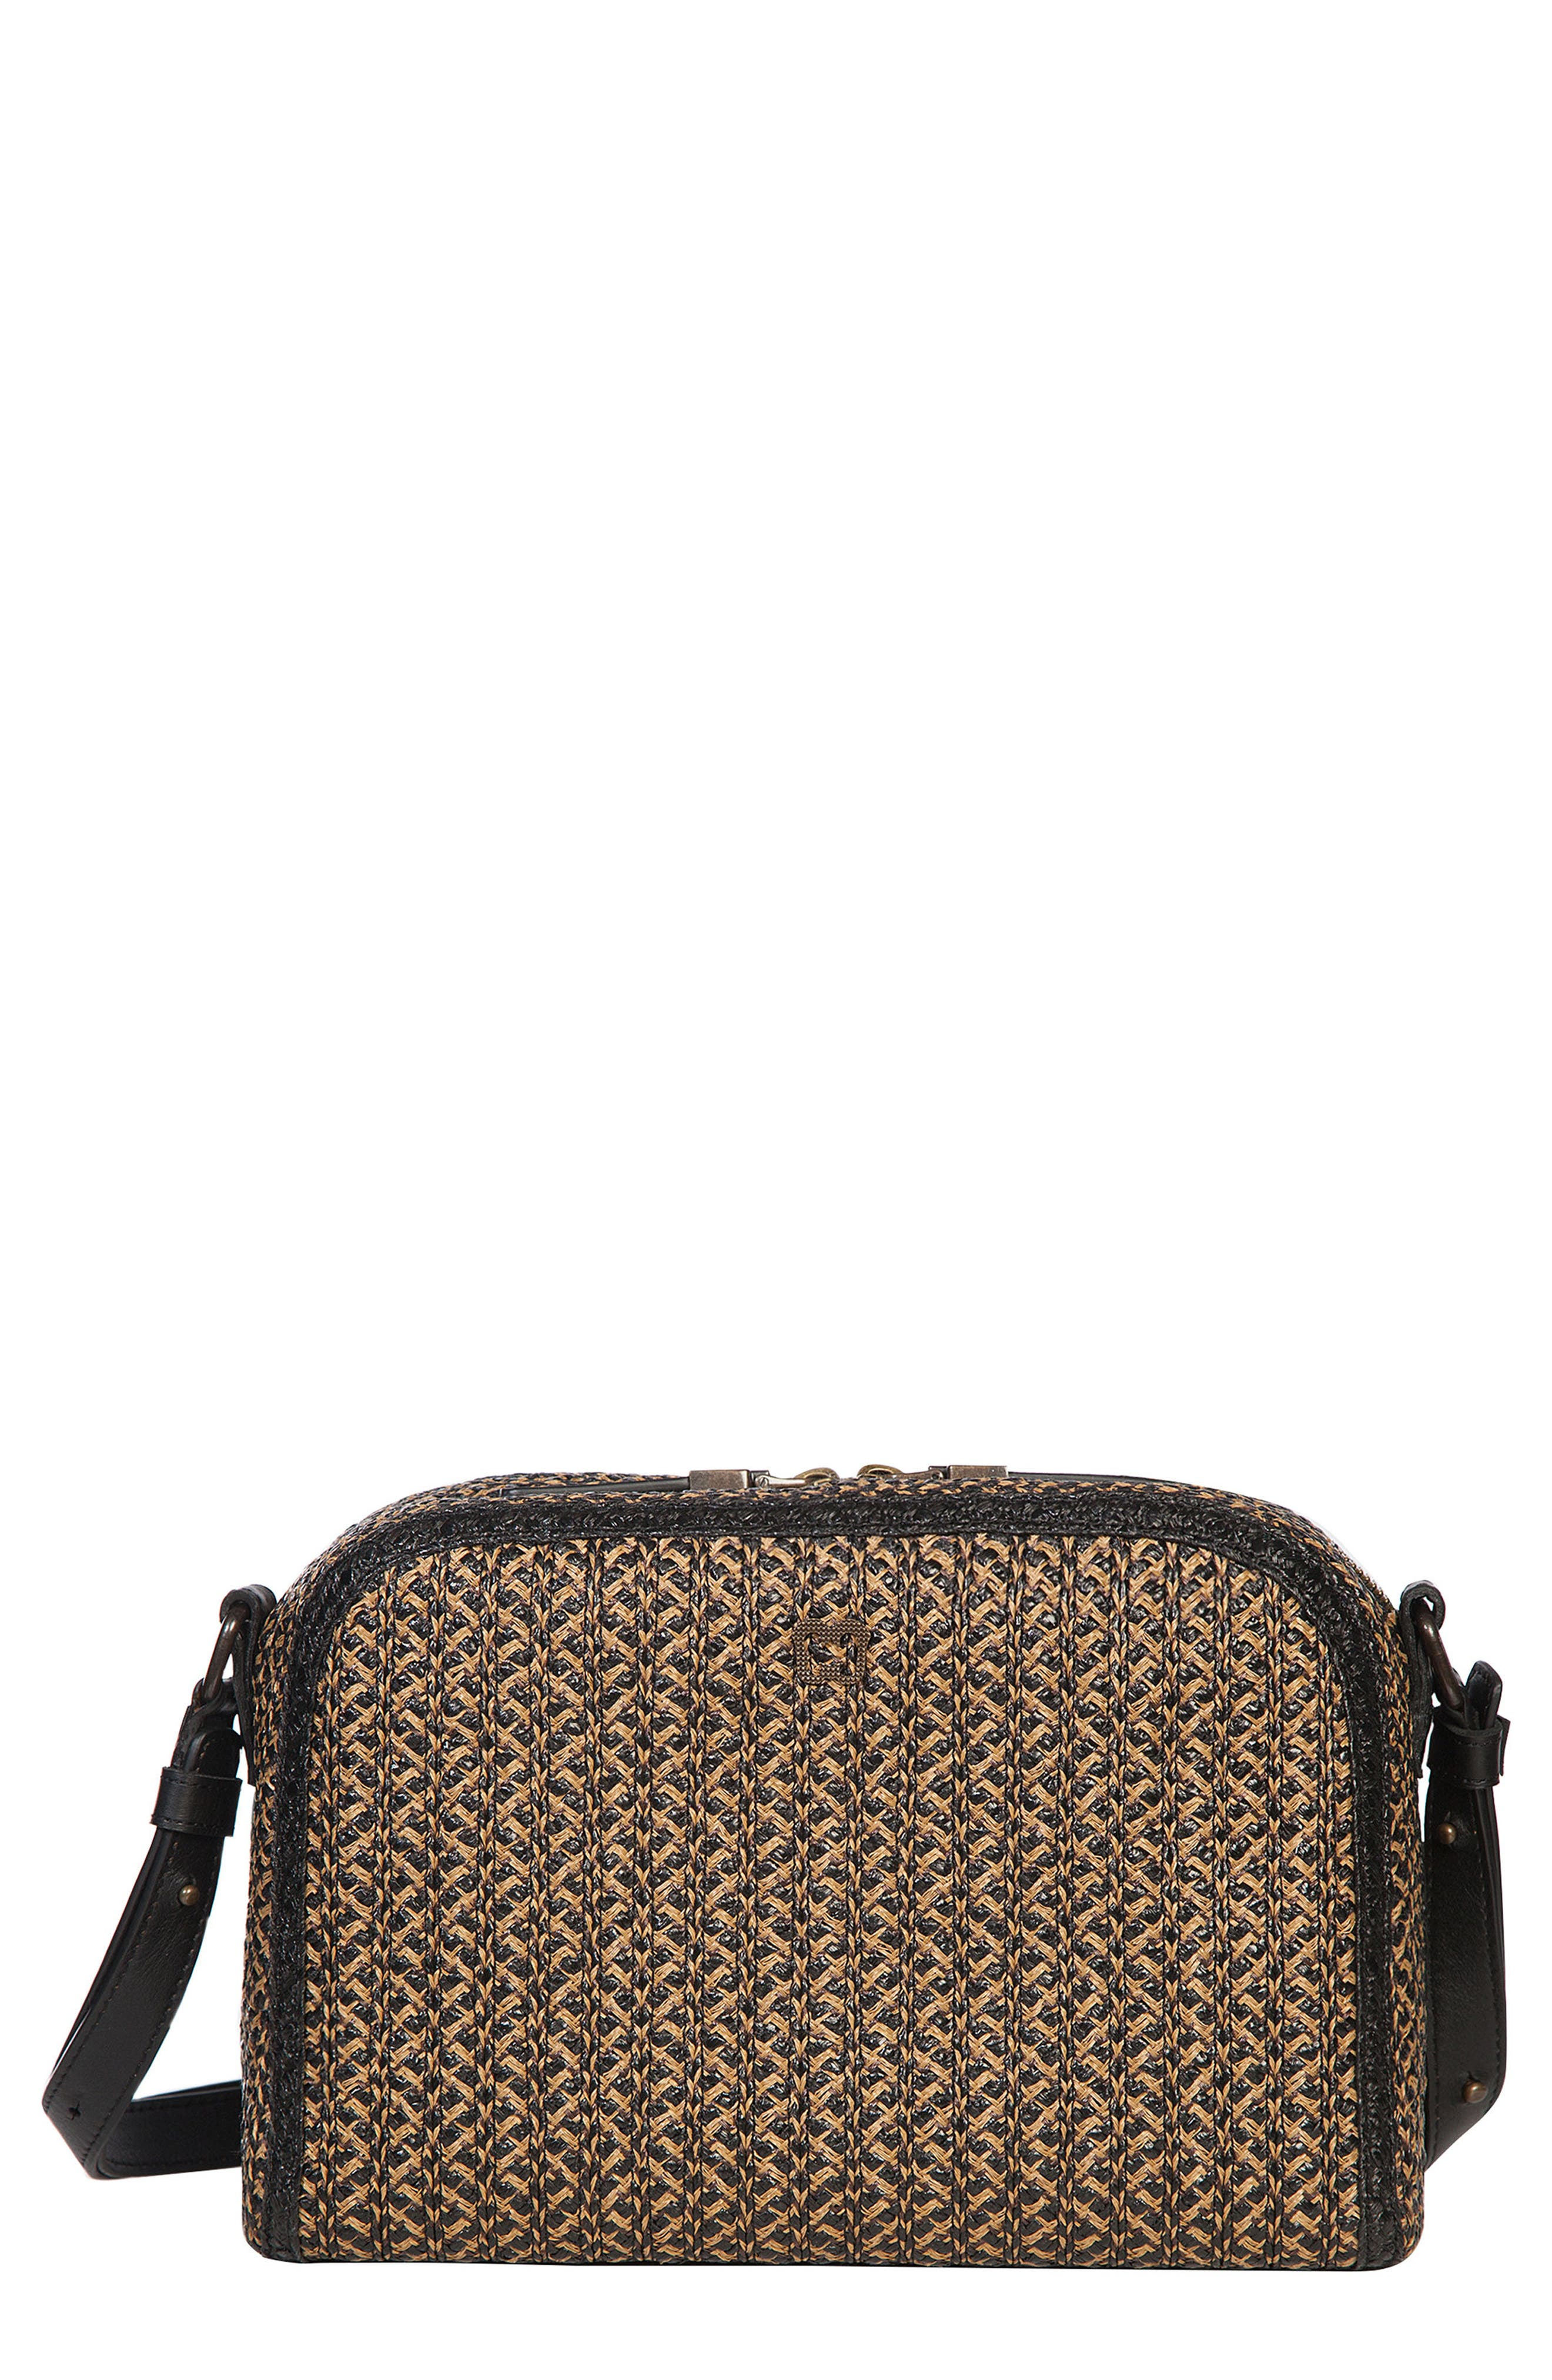 Squishee<sup>®</sup> Courbe Crossbody Bag,                             Main thumbnail 1, color,                             Antique